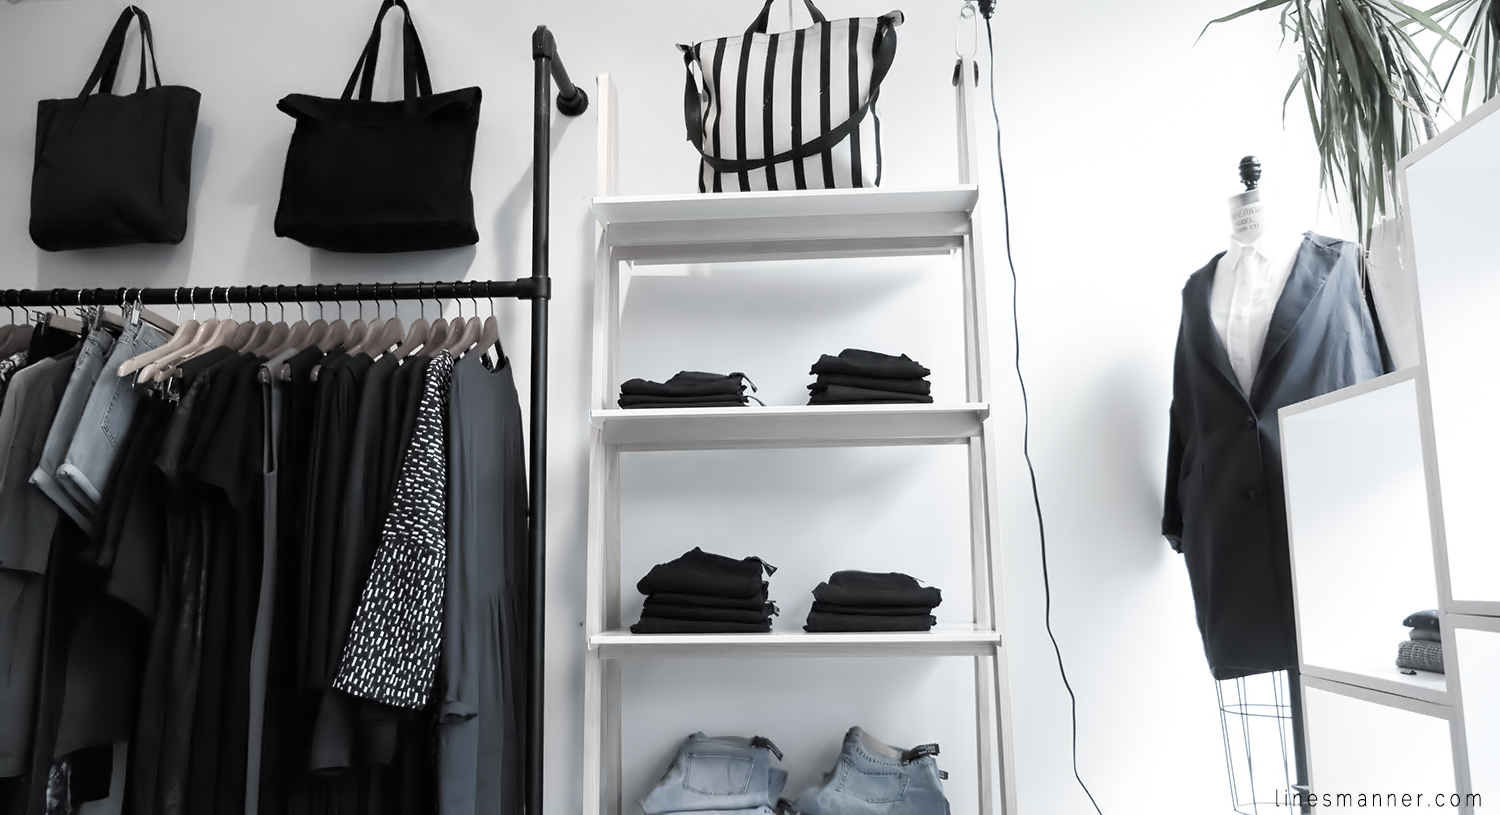 Lines-Manner-Concept-Boutique-Store-Minimal-Trend-Essentials-Basics-Staples-Ibiki-Montreal-Canada-Art-Contemporary-Artistic-Details-Monochrome-Black_and_White-8